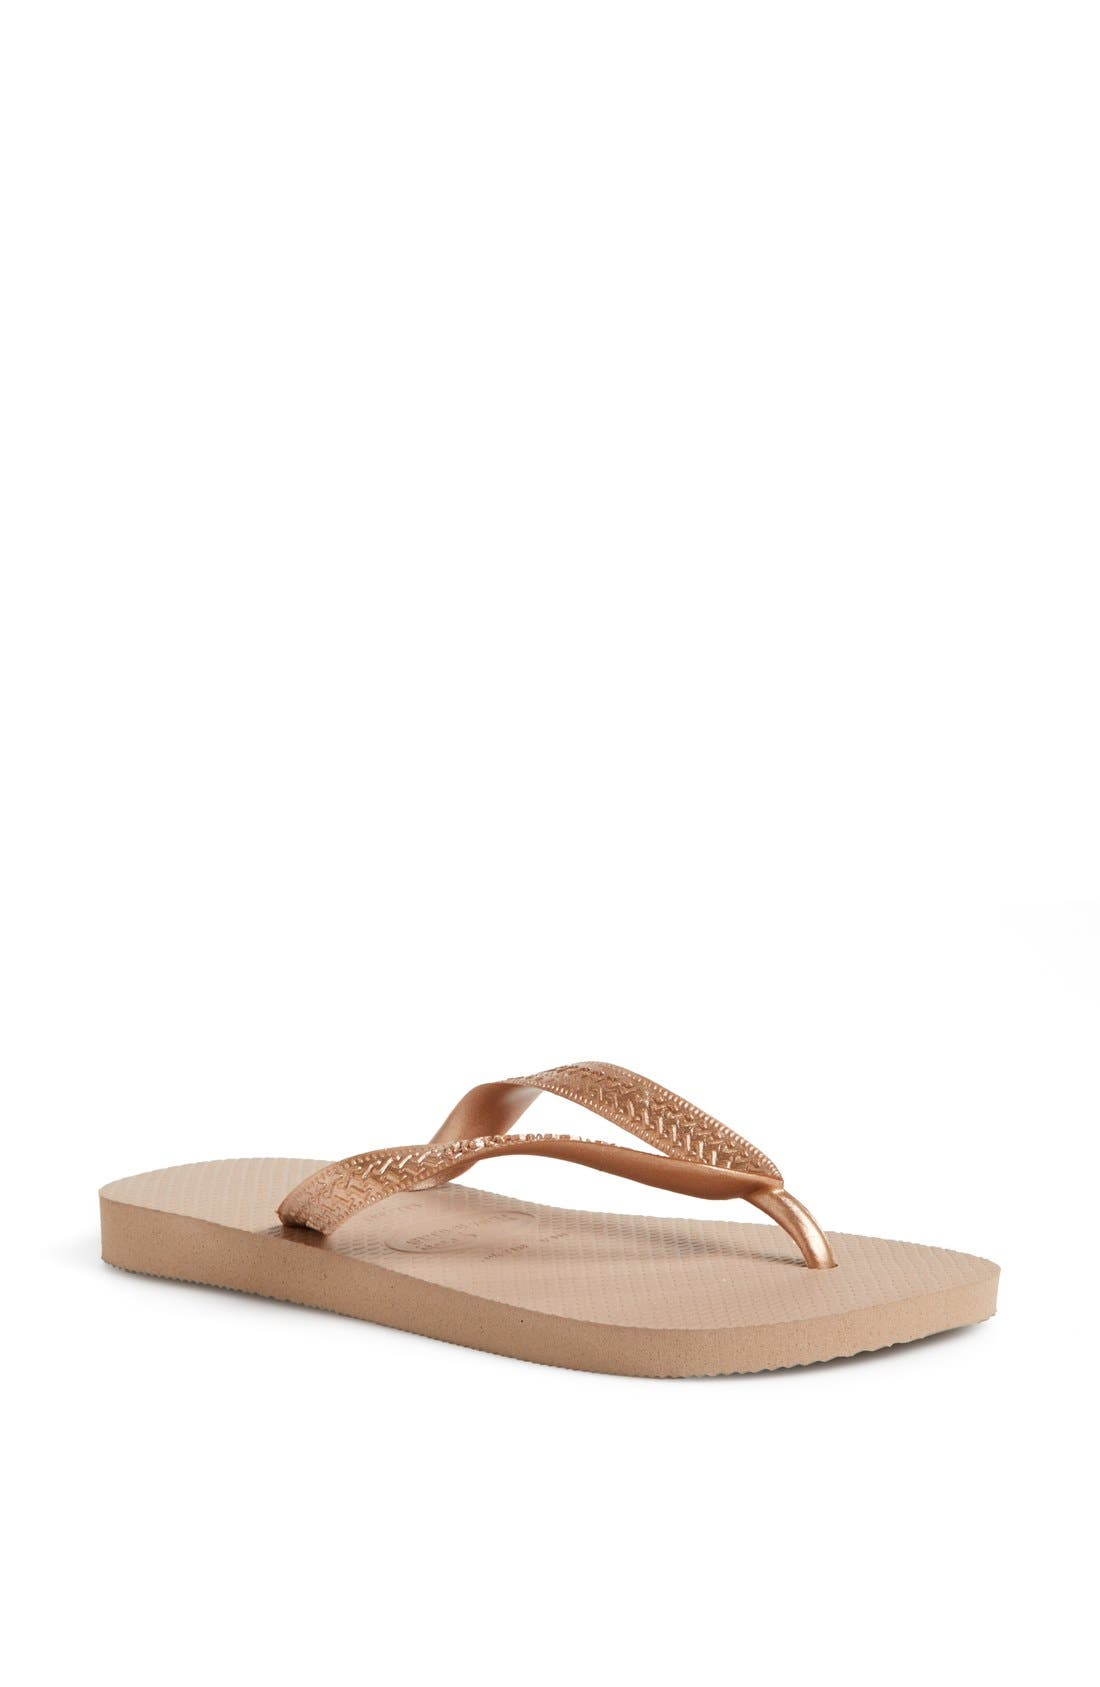 Main Image - Havaianas 'Metallic Top' Thong Sandal (Women)